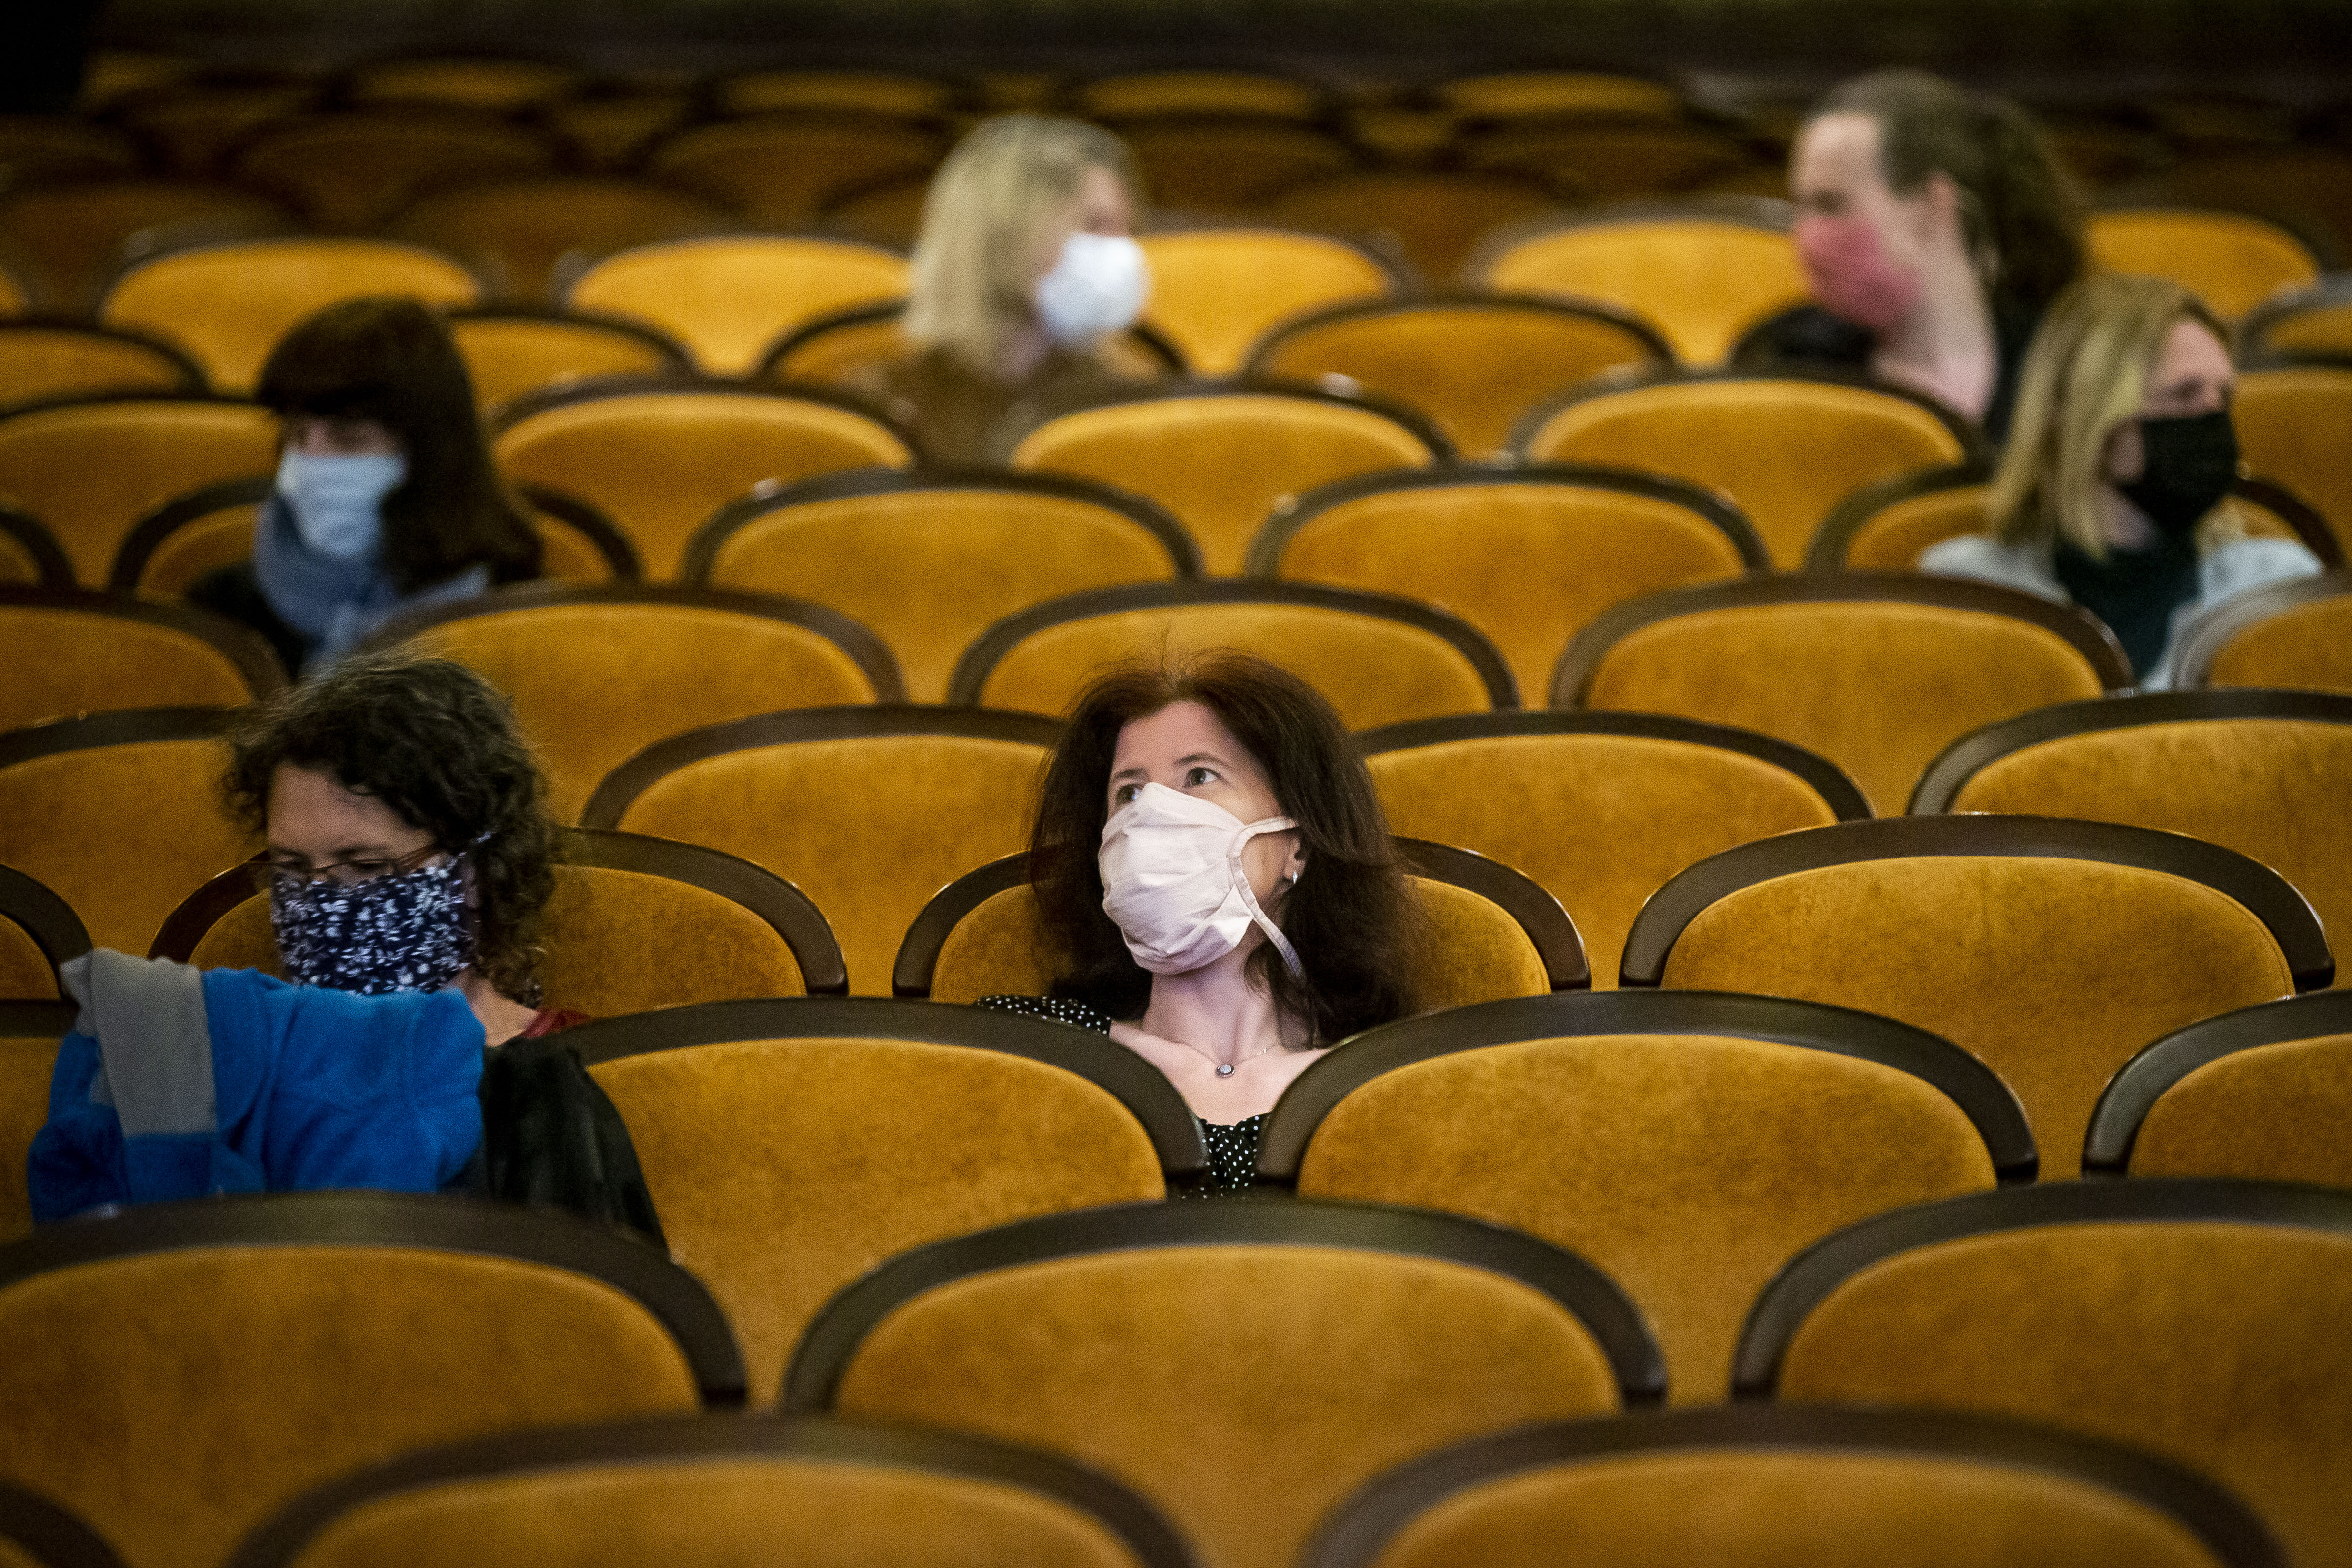 The Future Of Movie Theaters How New Safety Guidelines Will Change Filmgoing